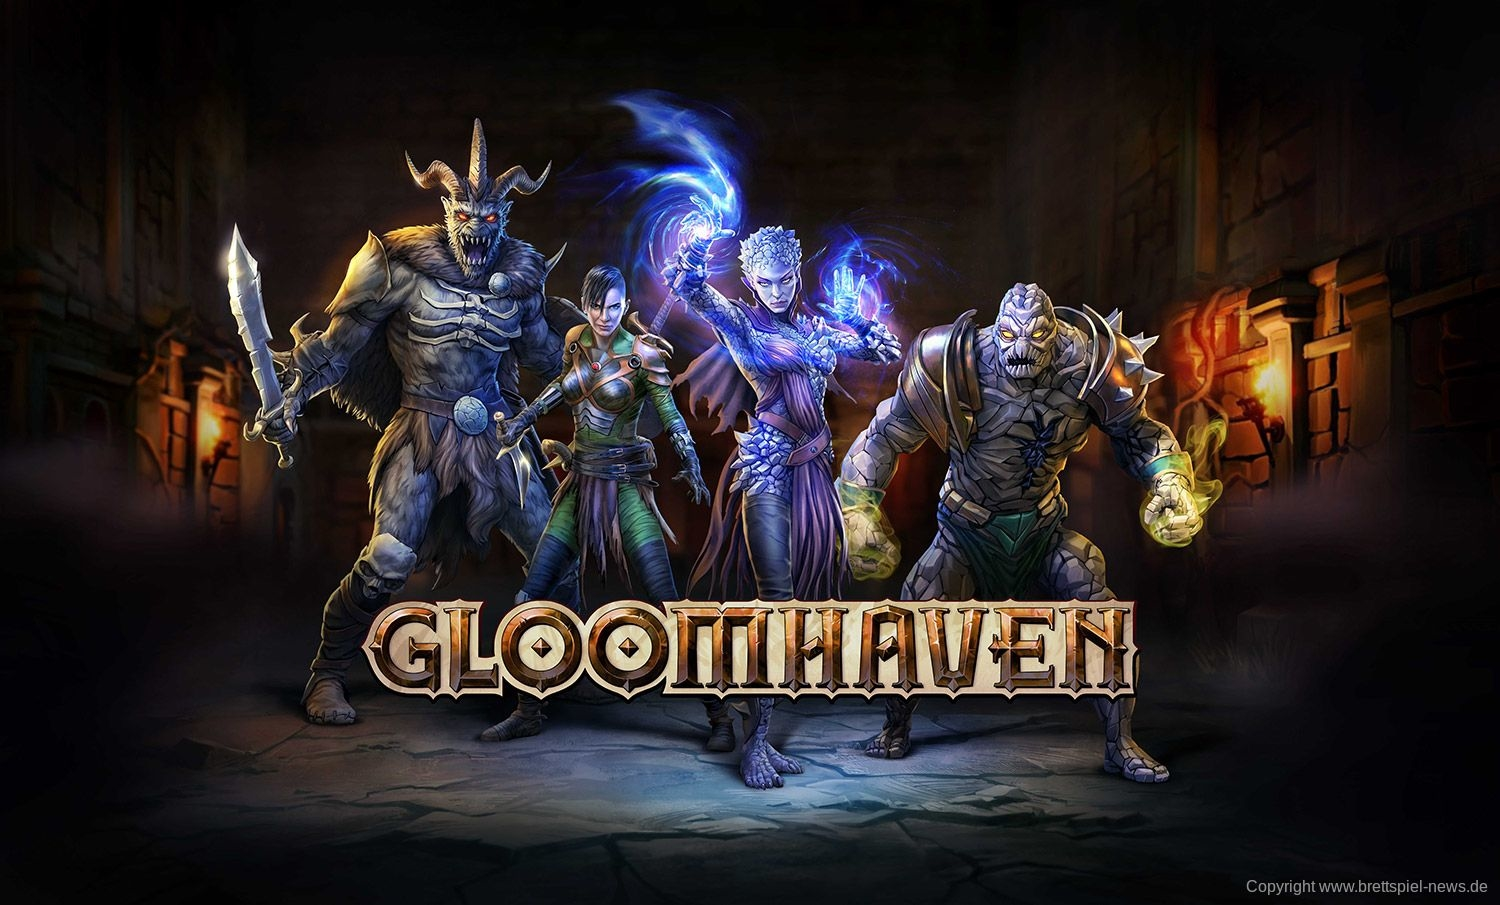 GLOOMHAVEN digital